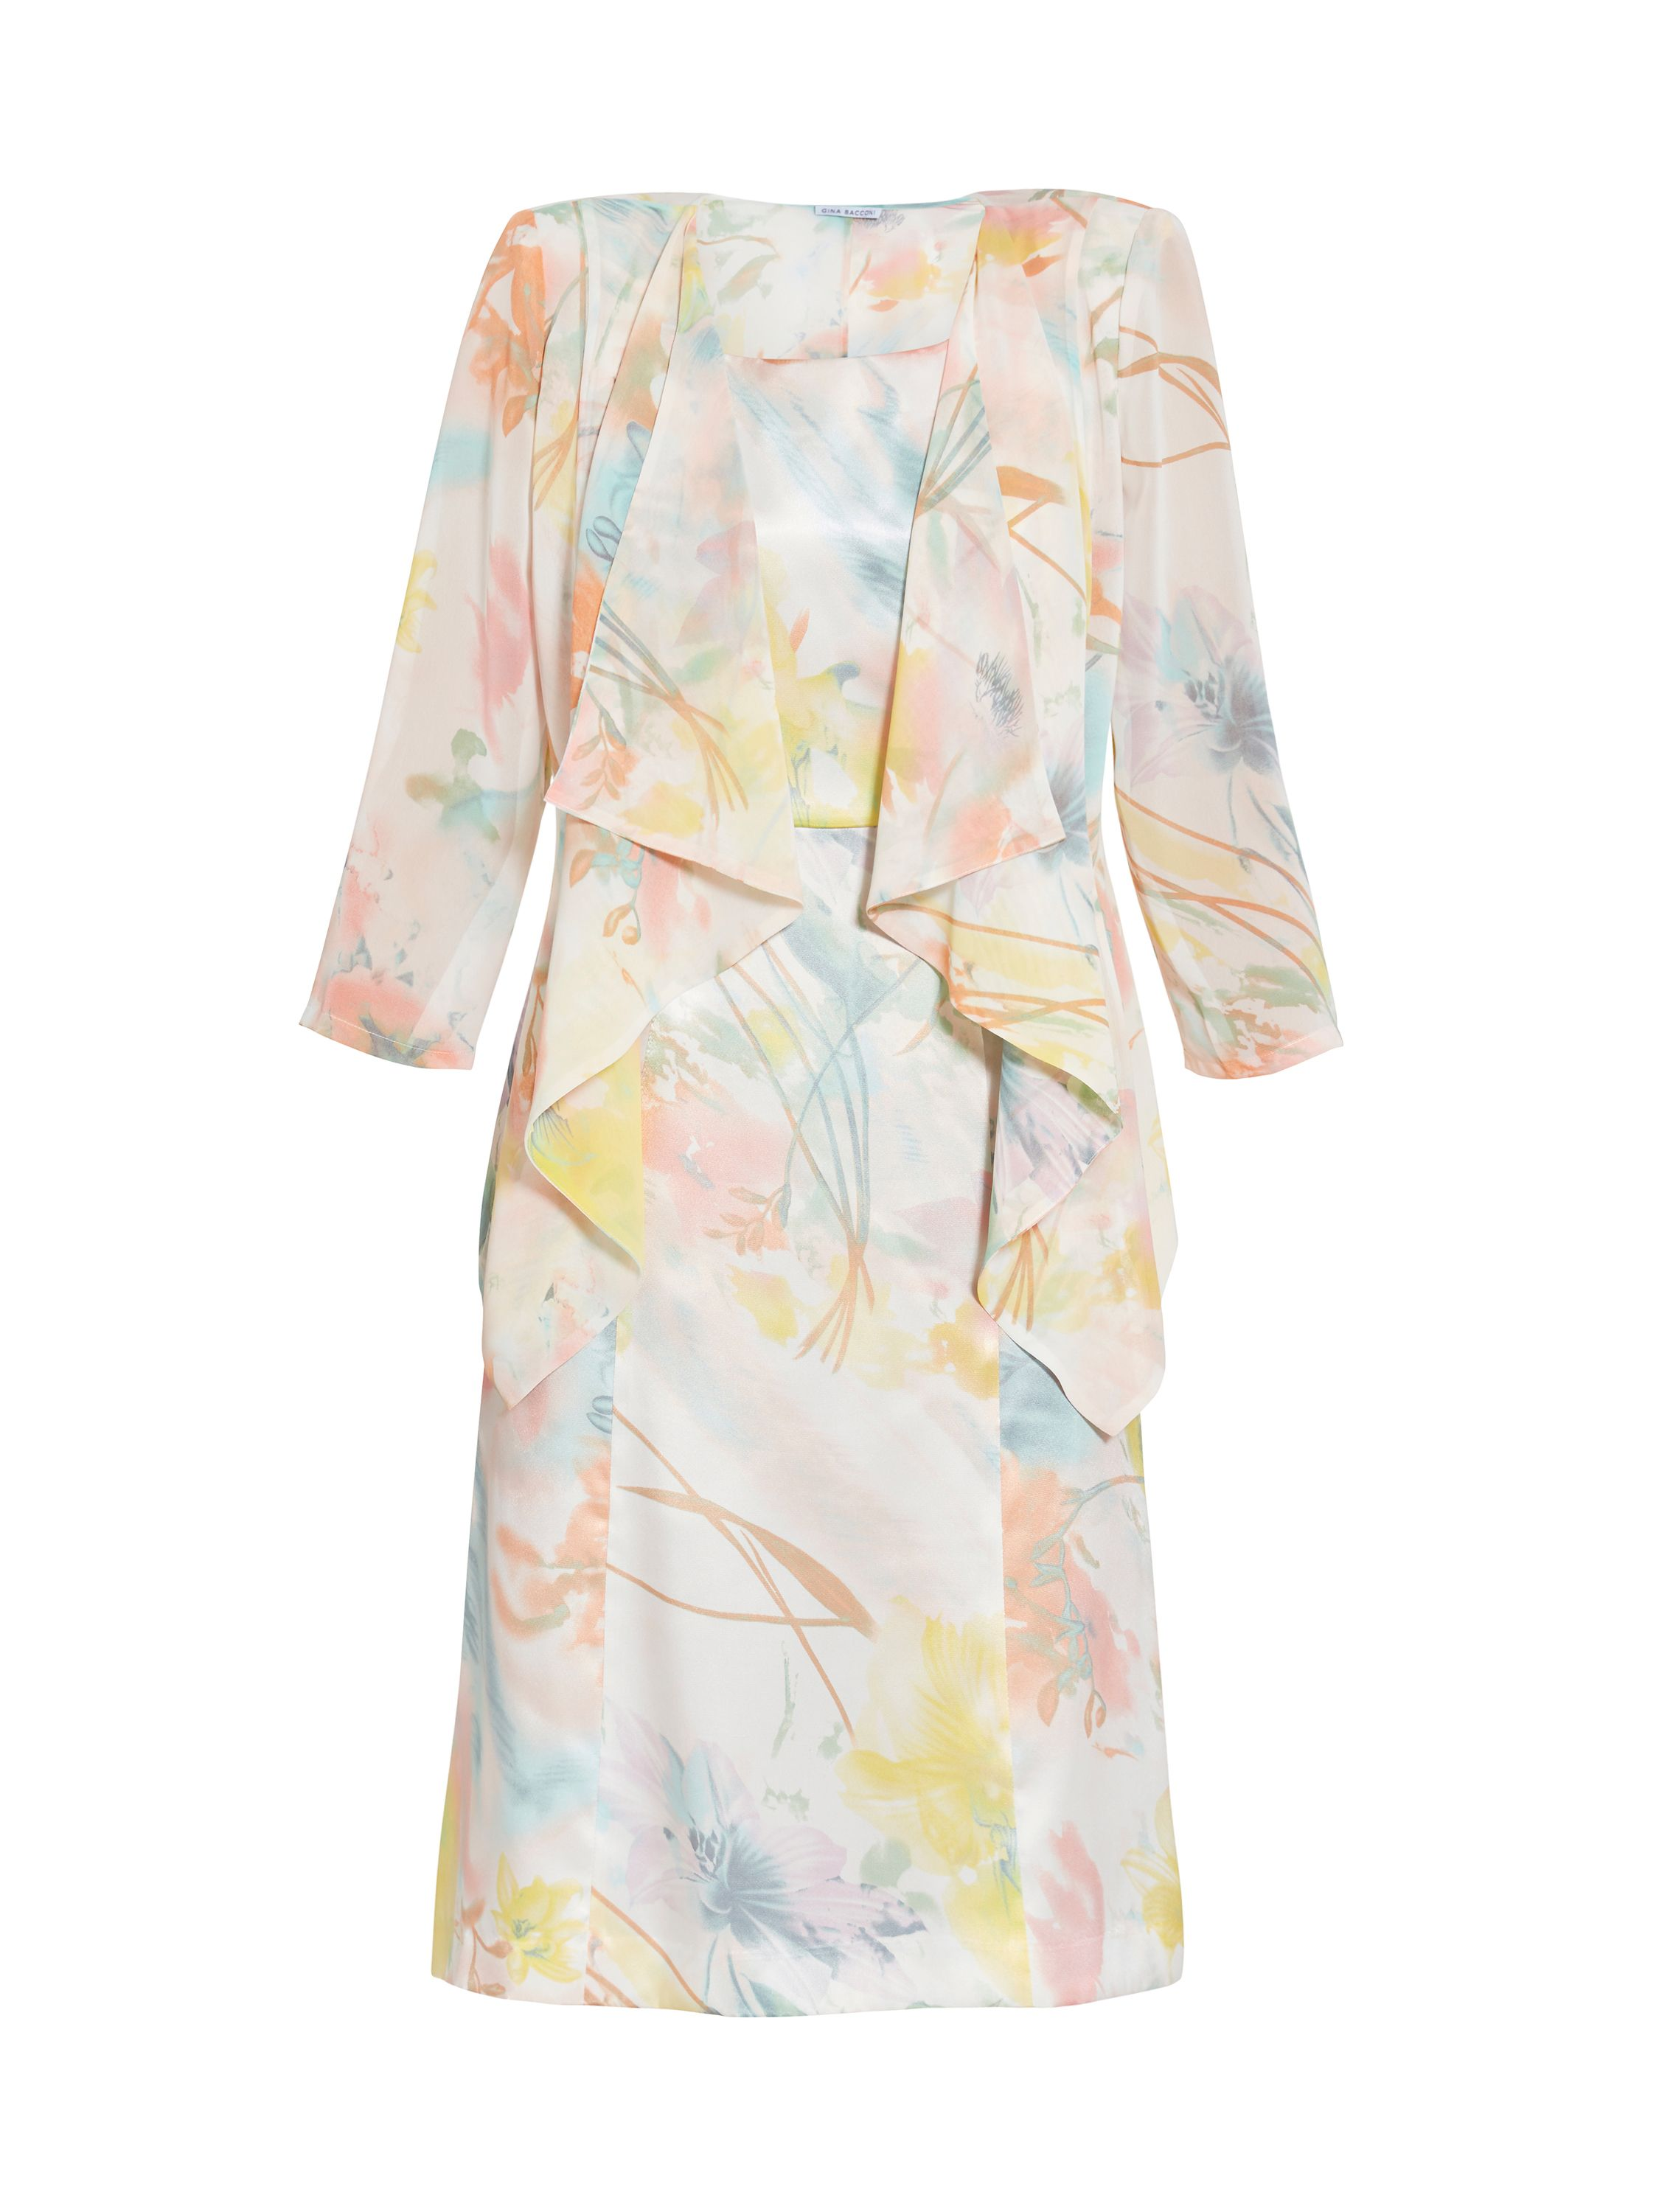 Gina Bacconi Floral print dress and jacket, Multi-Coloured